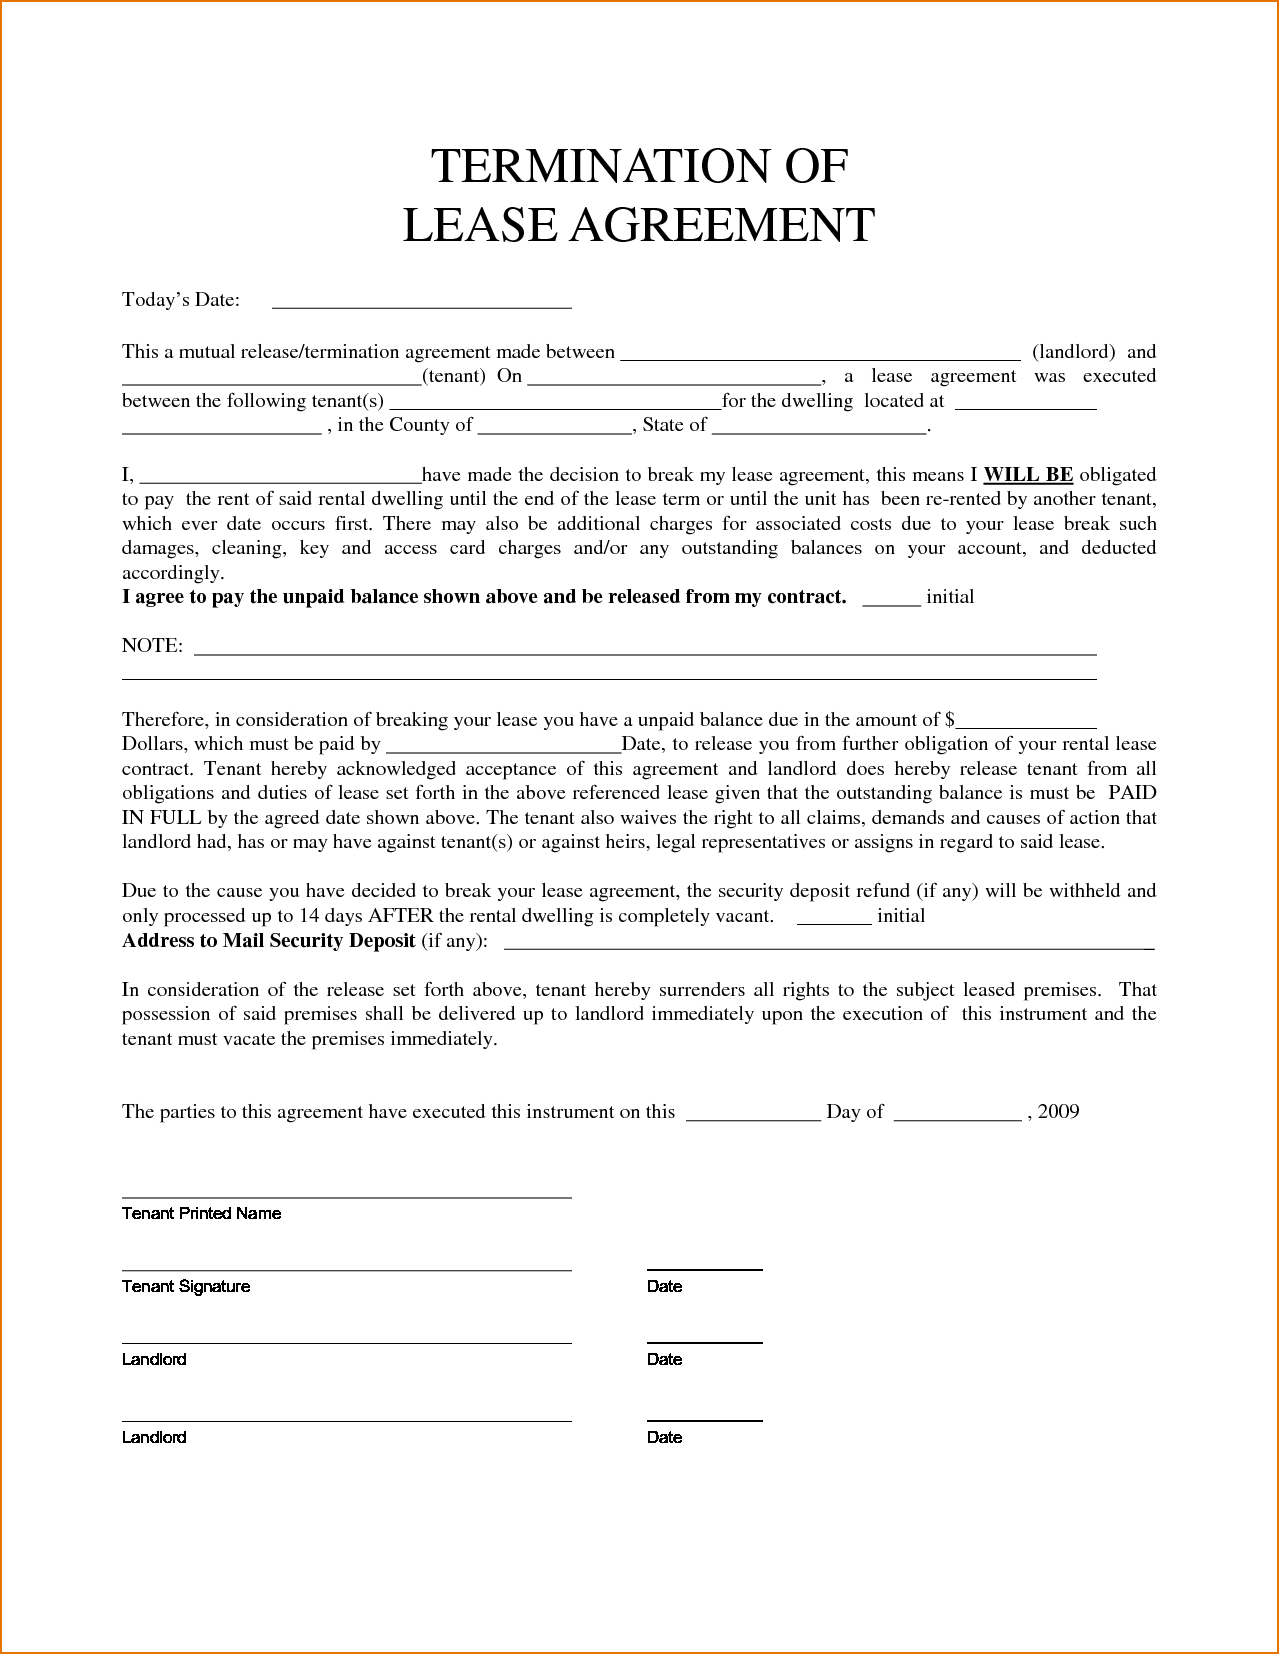 free delaware lease termination letter form day notice word agreement printable receipt due breach terminating essay - Notice To Terminate Lease Agreement